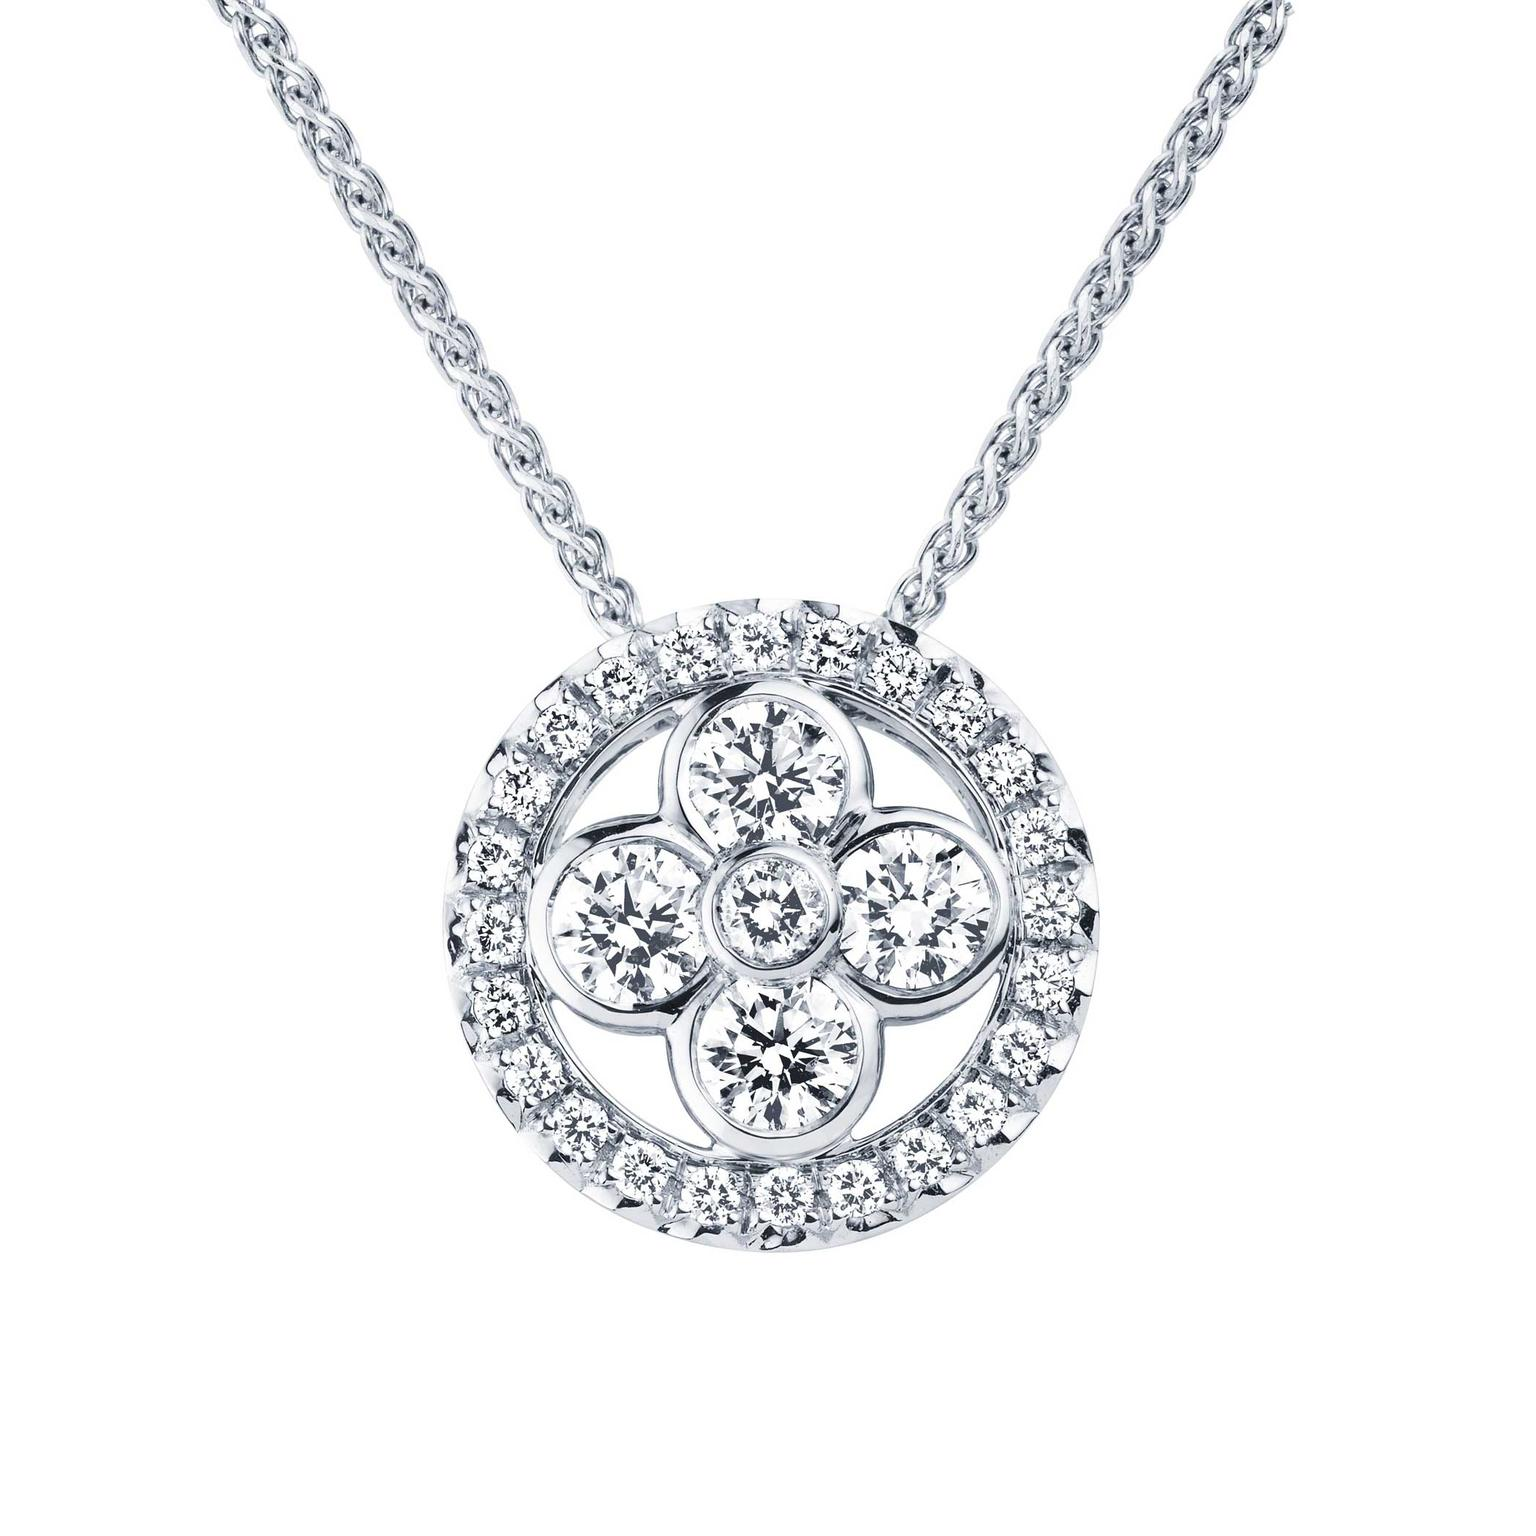 Louis Vuitton Monogram Sun and Stars collection Sun pendant necklace in white gold_zoom